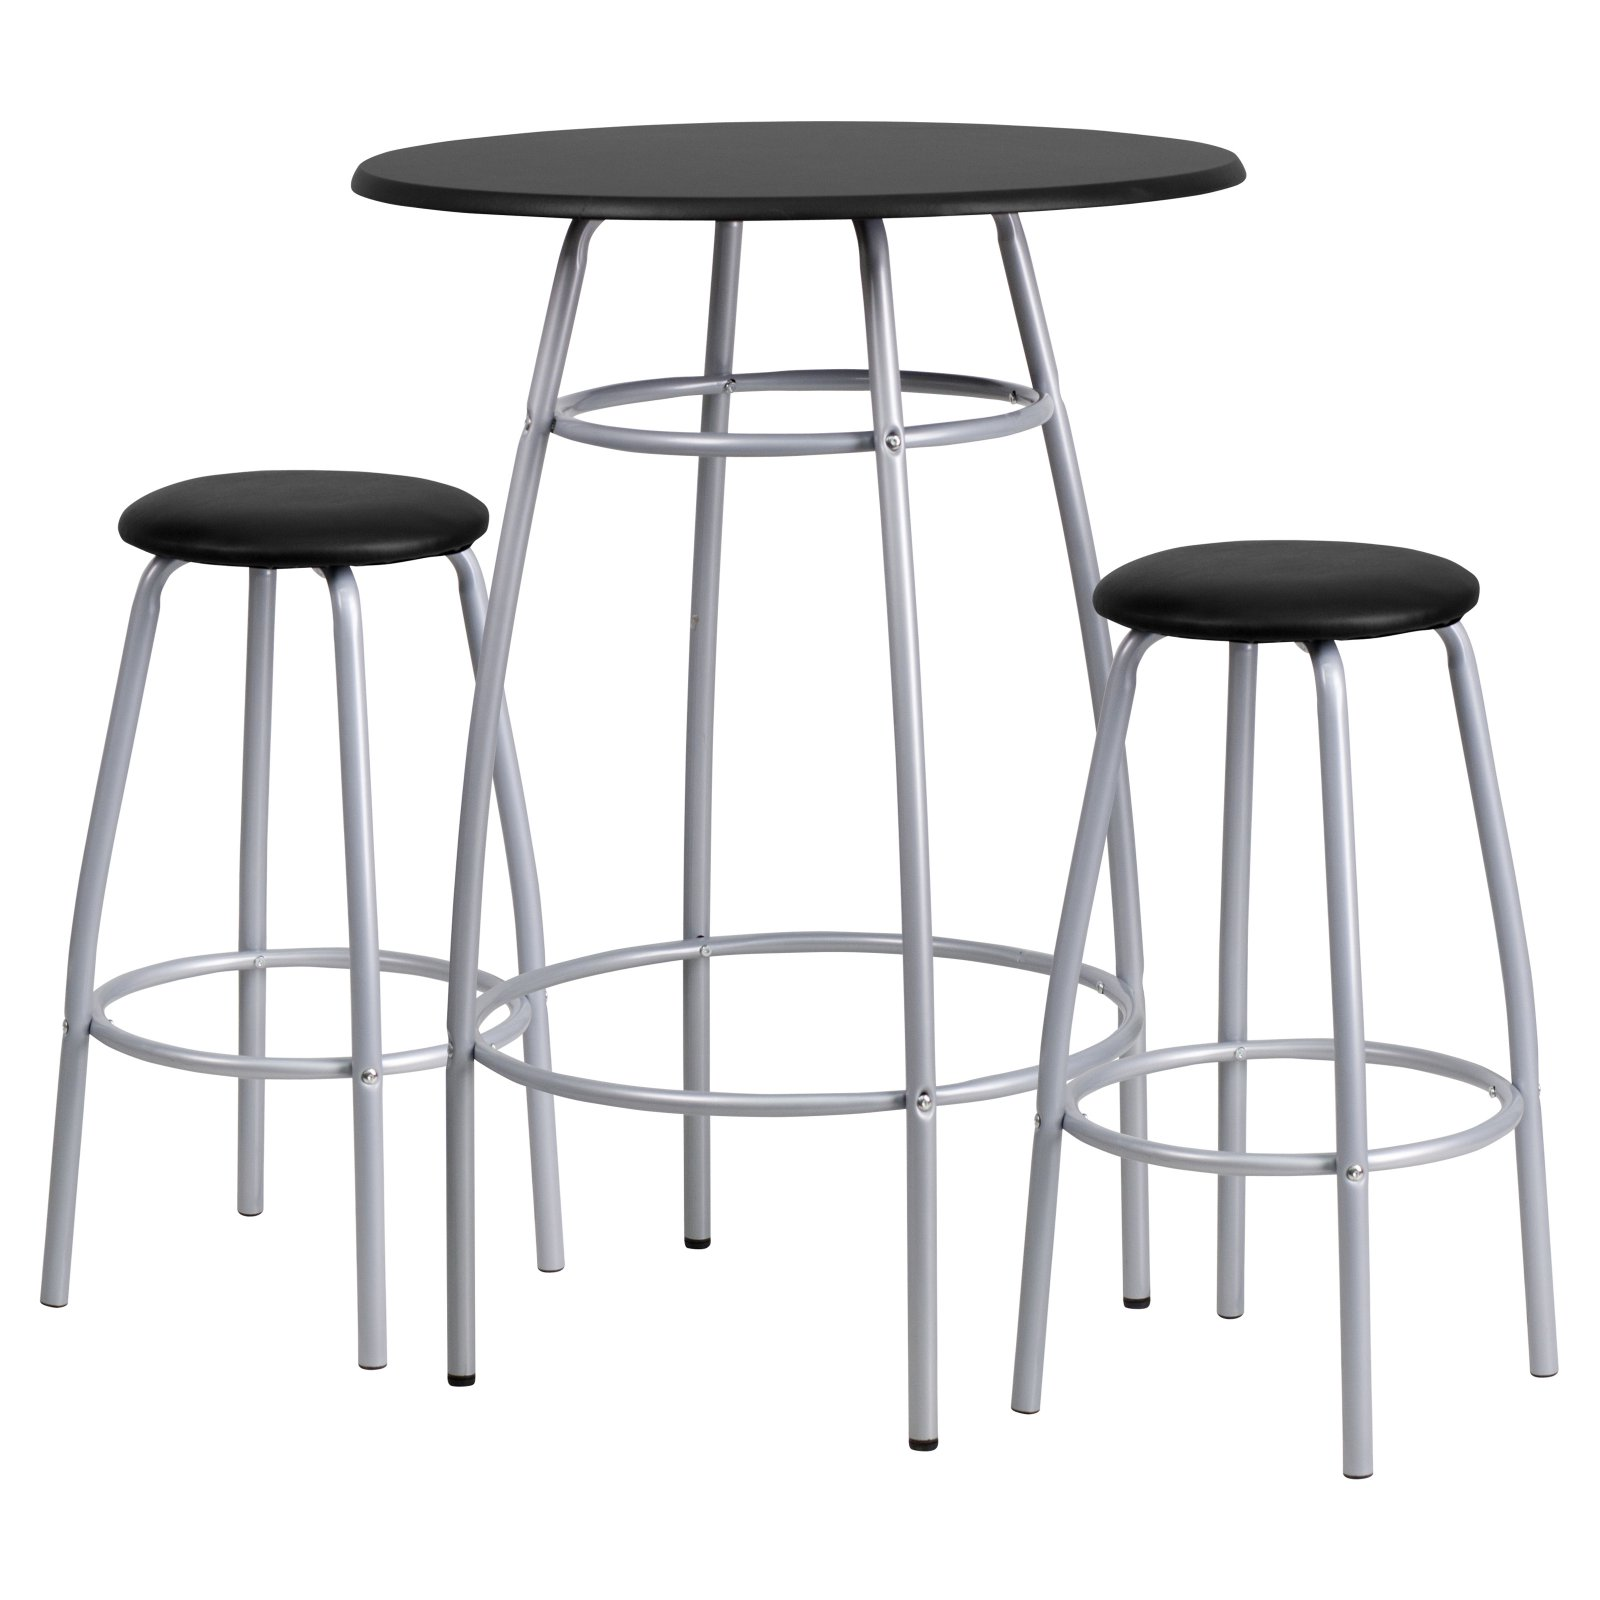 Good Flash Furniture Bar Height Table And Stool Set With Bowed Out Legs, Black